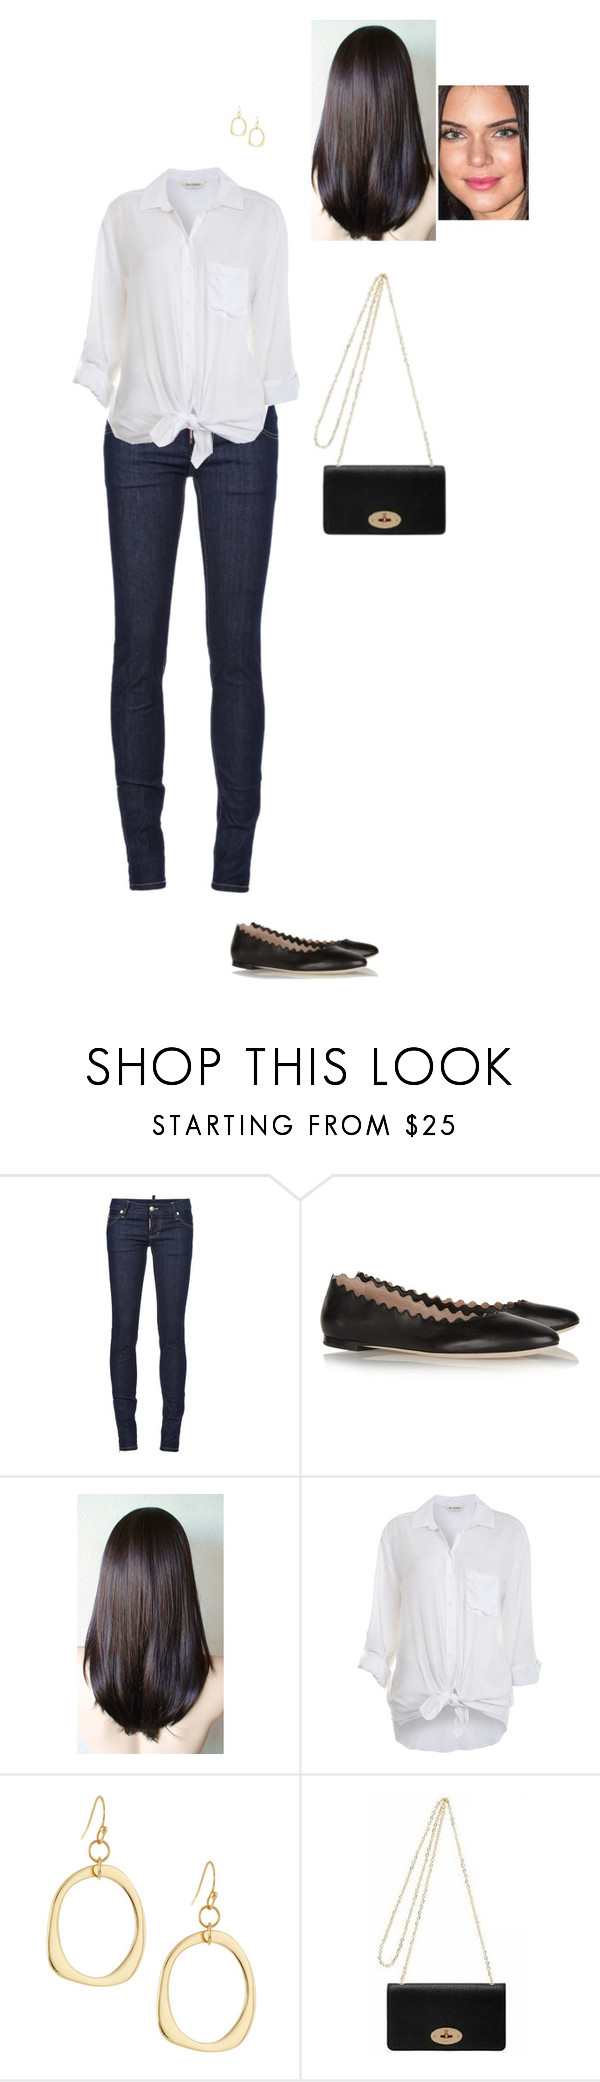 """Sem título #8197"" by gracebeckett ❤ liked on Polyvore featuring Dsquared2, Chloé, Miss Selfridge, Lydell NYC and Mulberry"